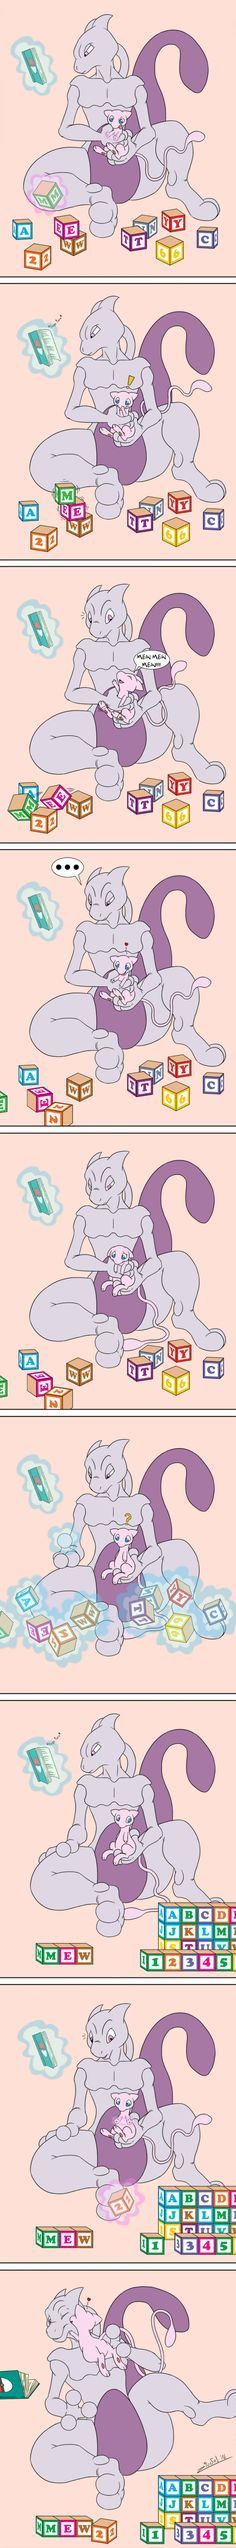 Psychic Buddies --- awwww this is really cute Pokemon Mew, Lucario Pokemon, Mew And Mewtwo, Pokemon Comics, Pokemon Funny, Poker, Love Psychic, Online Psychic, Art Manga